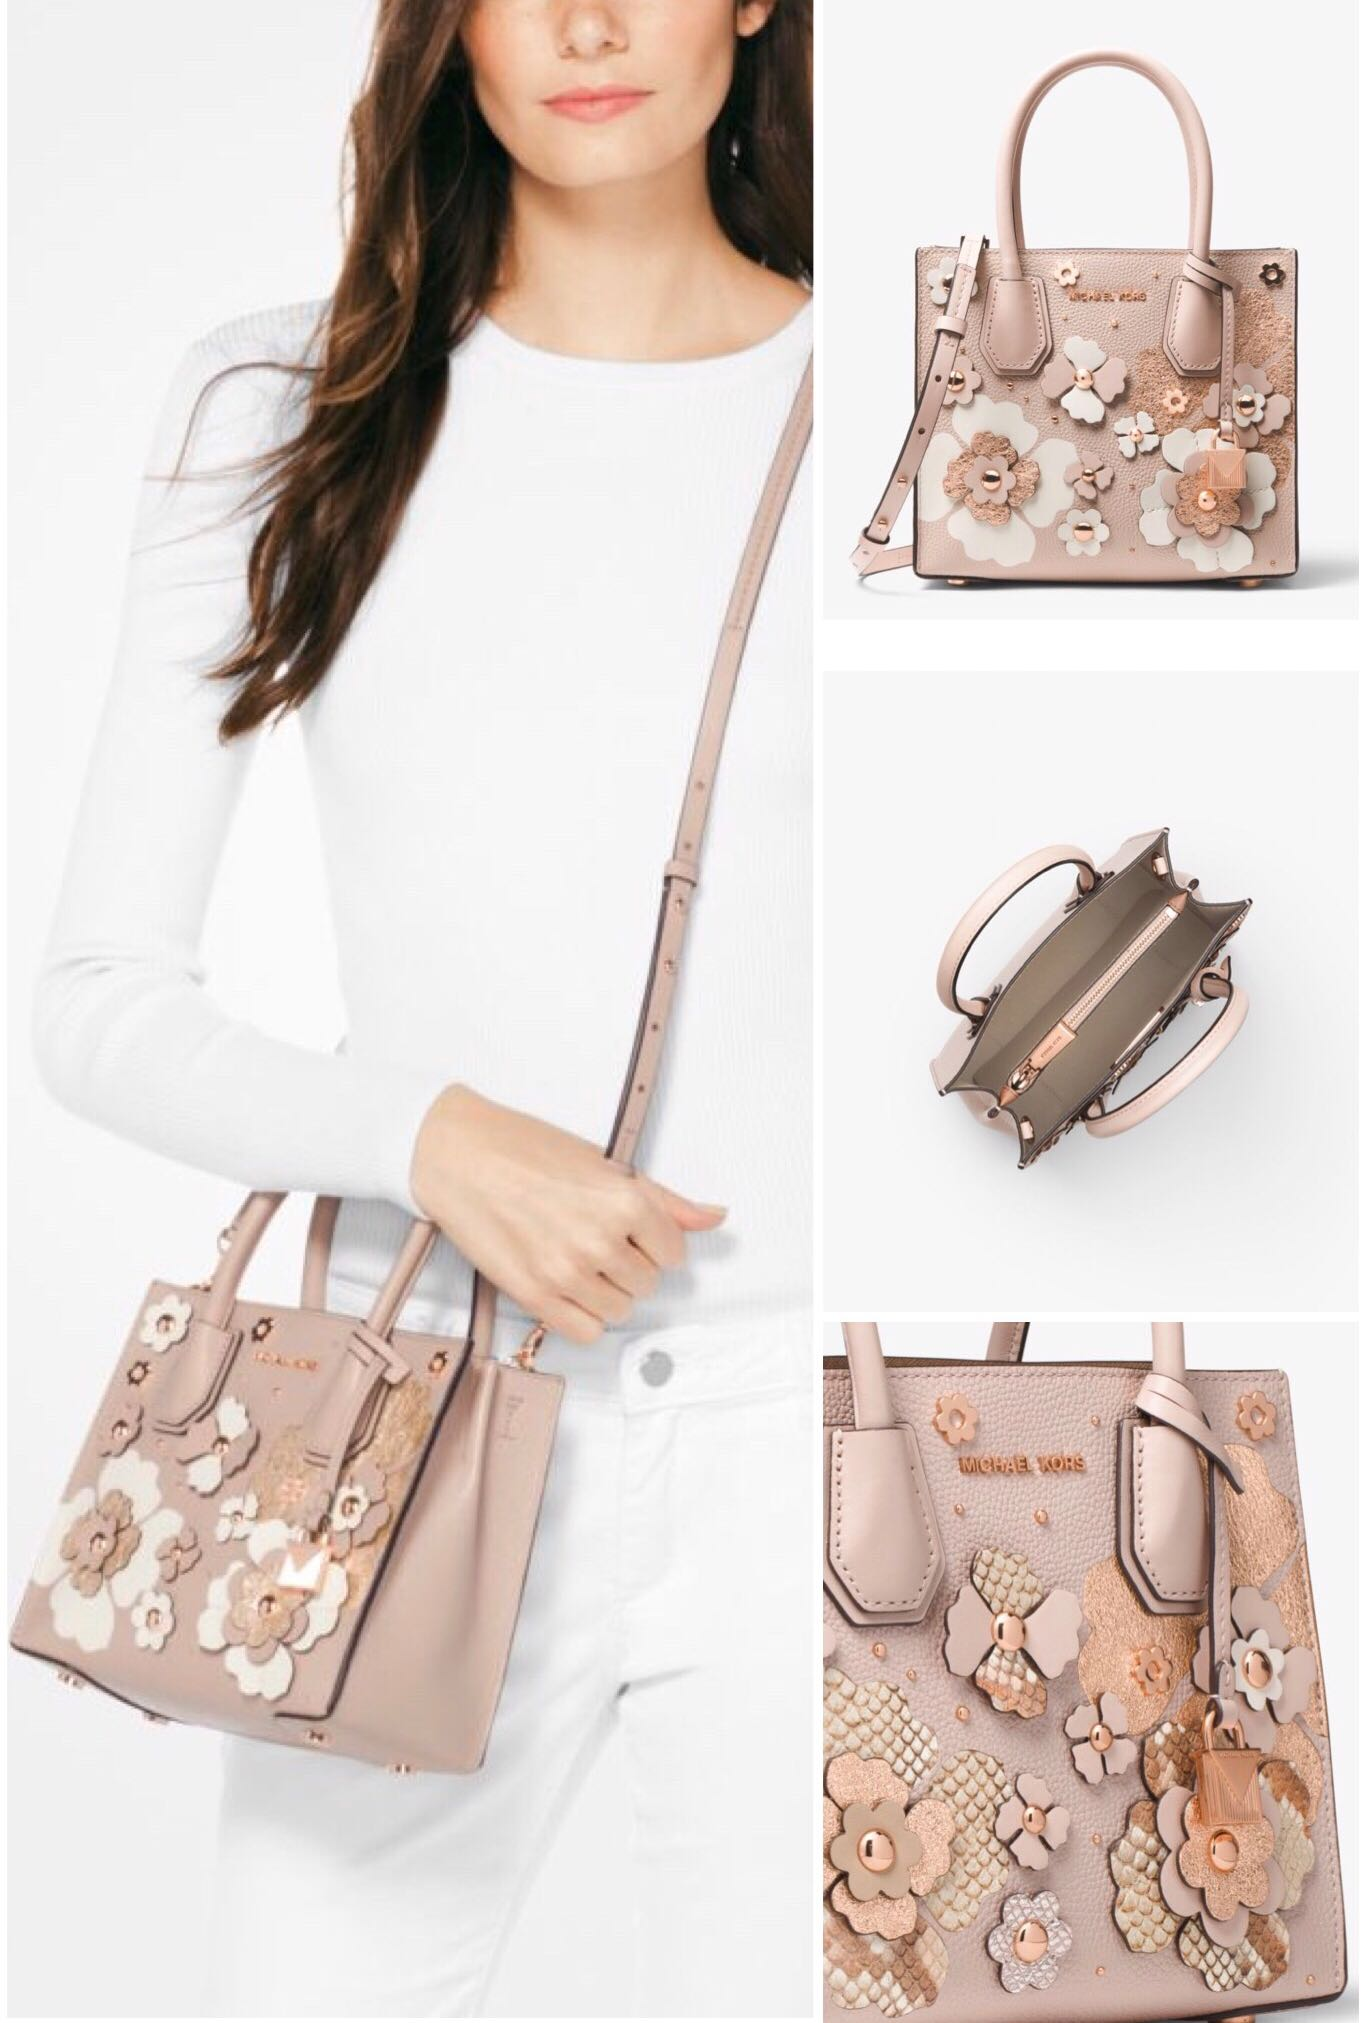 9e7298557681 MICHAEL KORS Mercer Floral Embellished Leather Crossbody, Luxury, Bags &  Wallets on Carousell